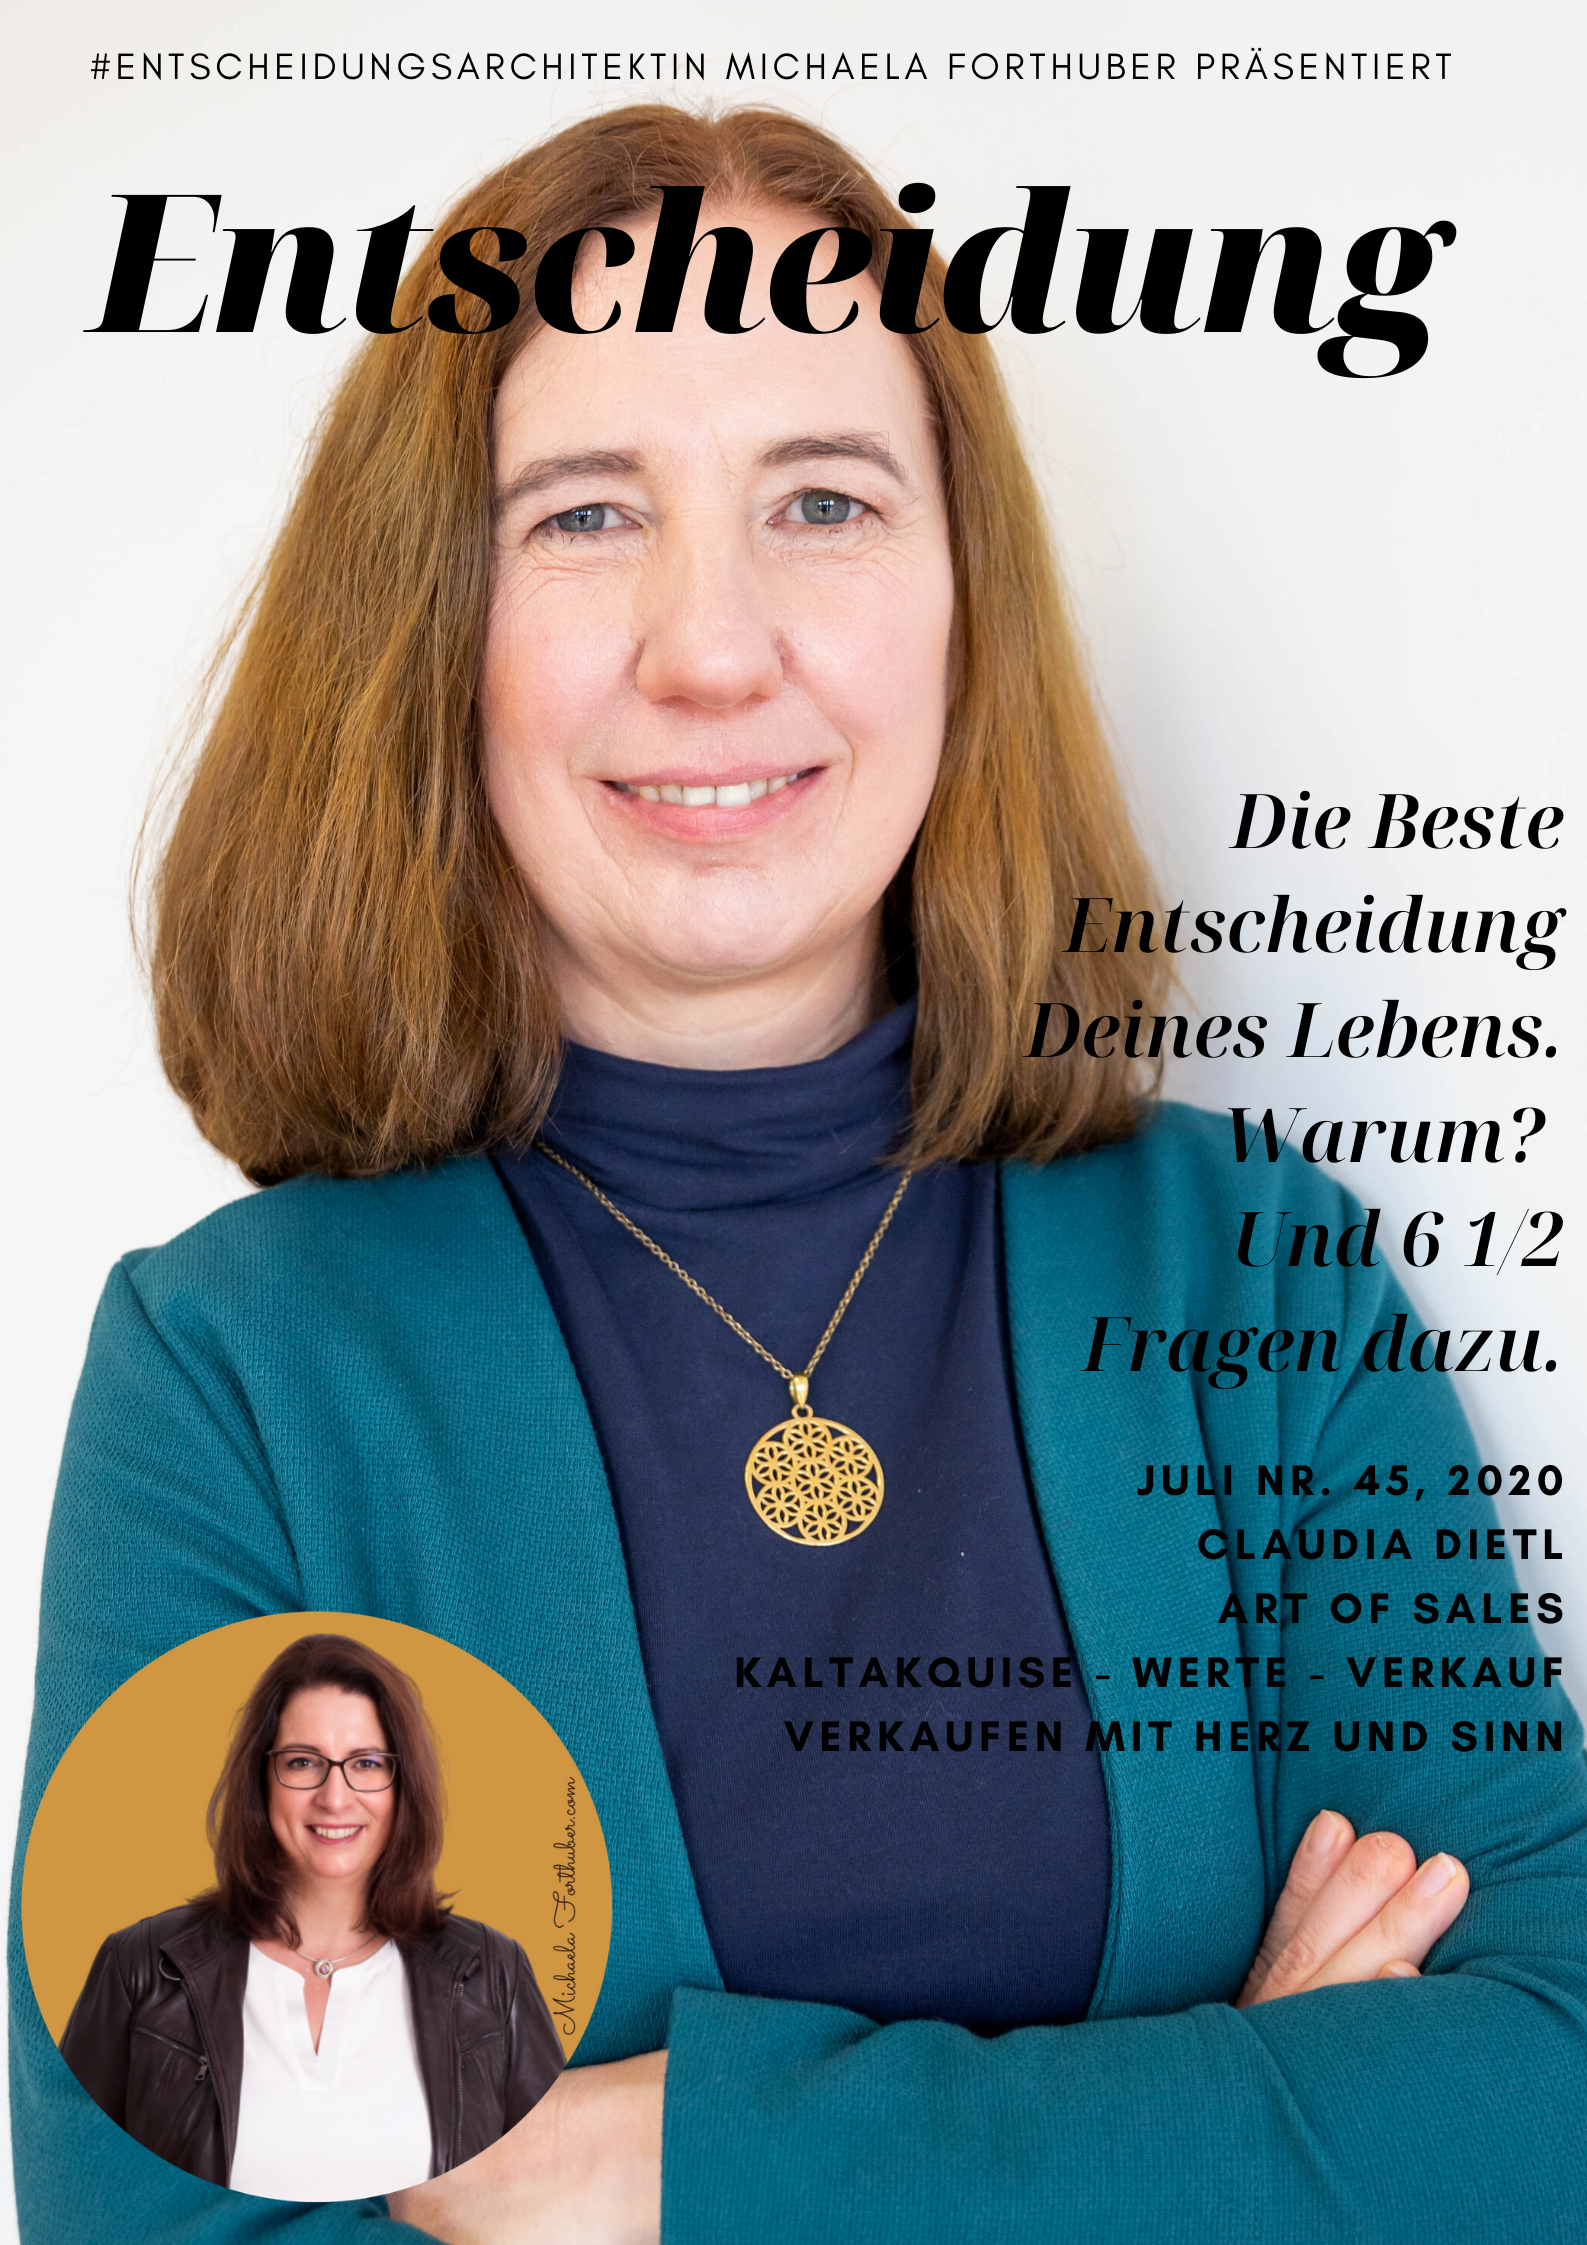 Blog Interview Entscheiden Cover Michaela Forthuber #Entscheidungsarchitektin